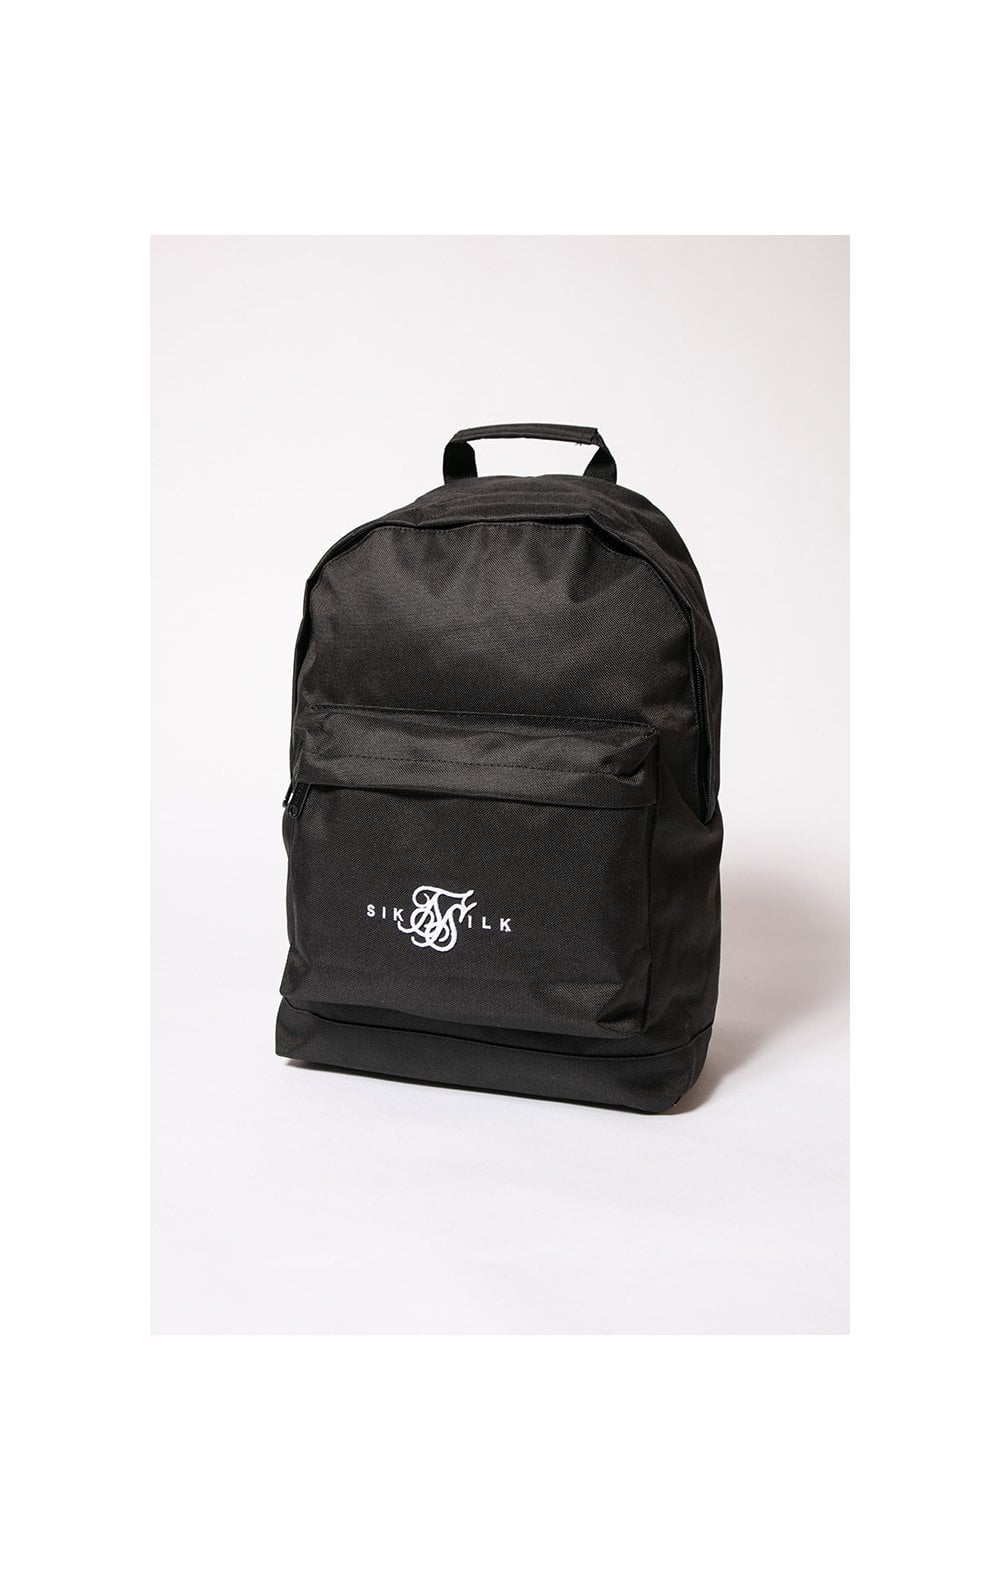 SikSilk Dual Logo Backpack – Black & White